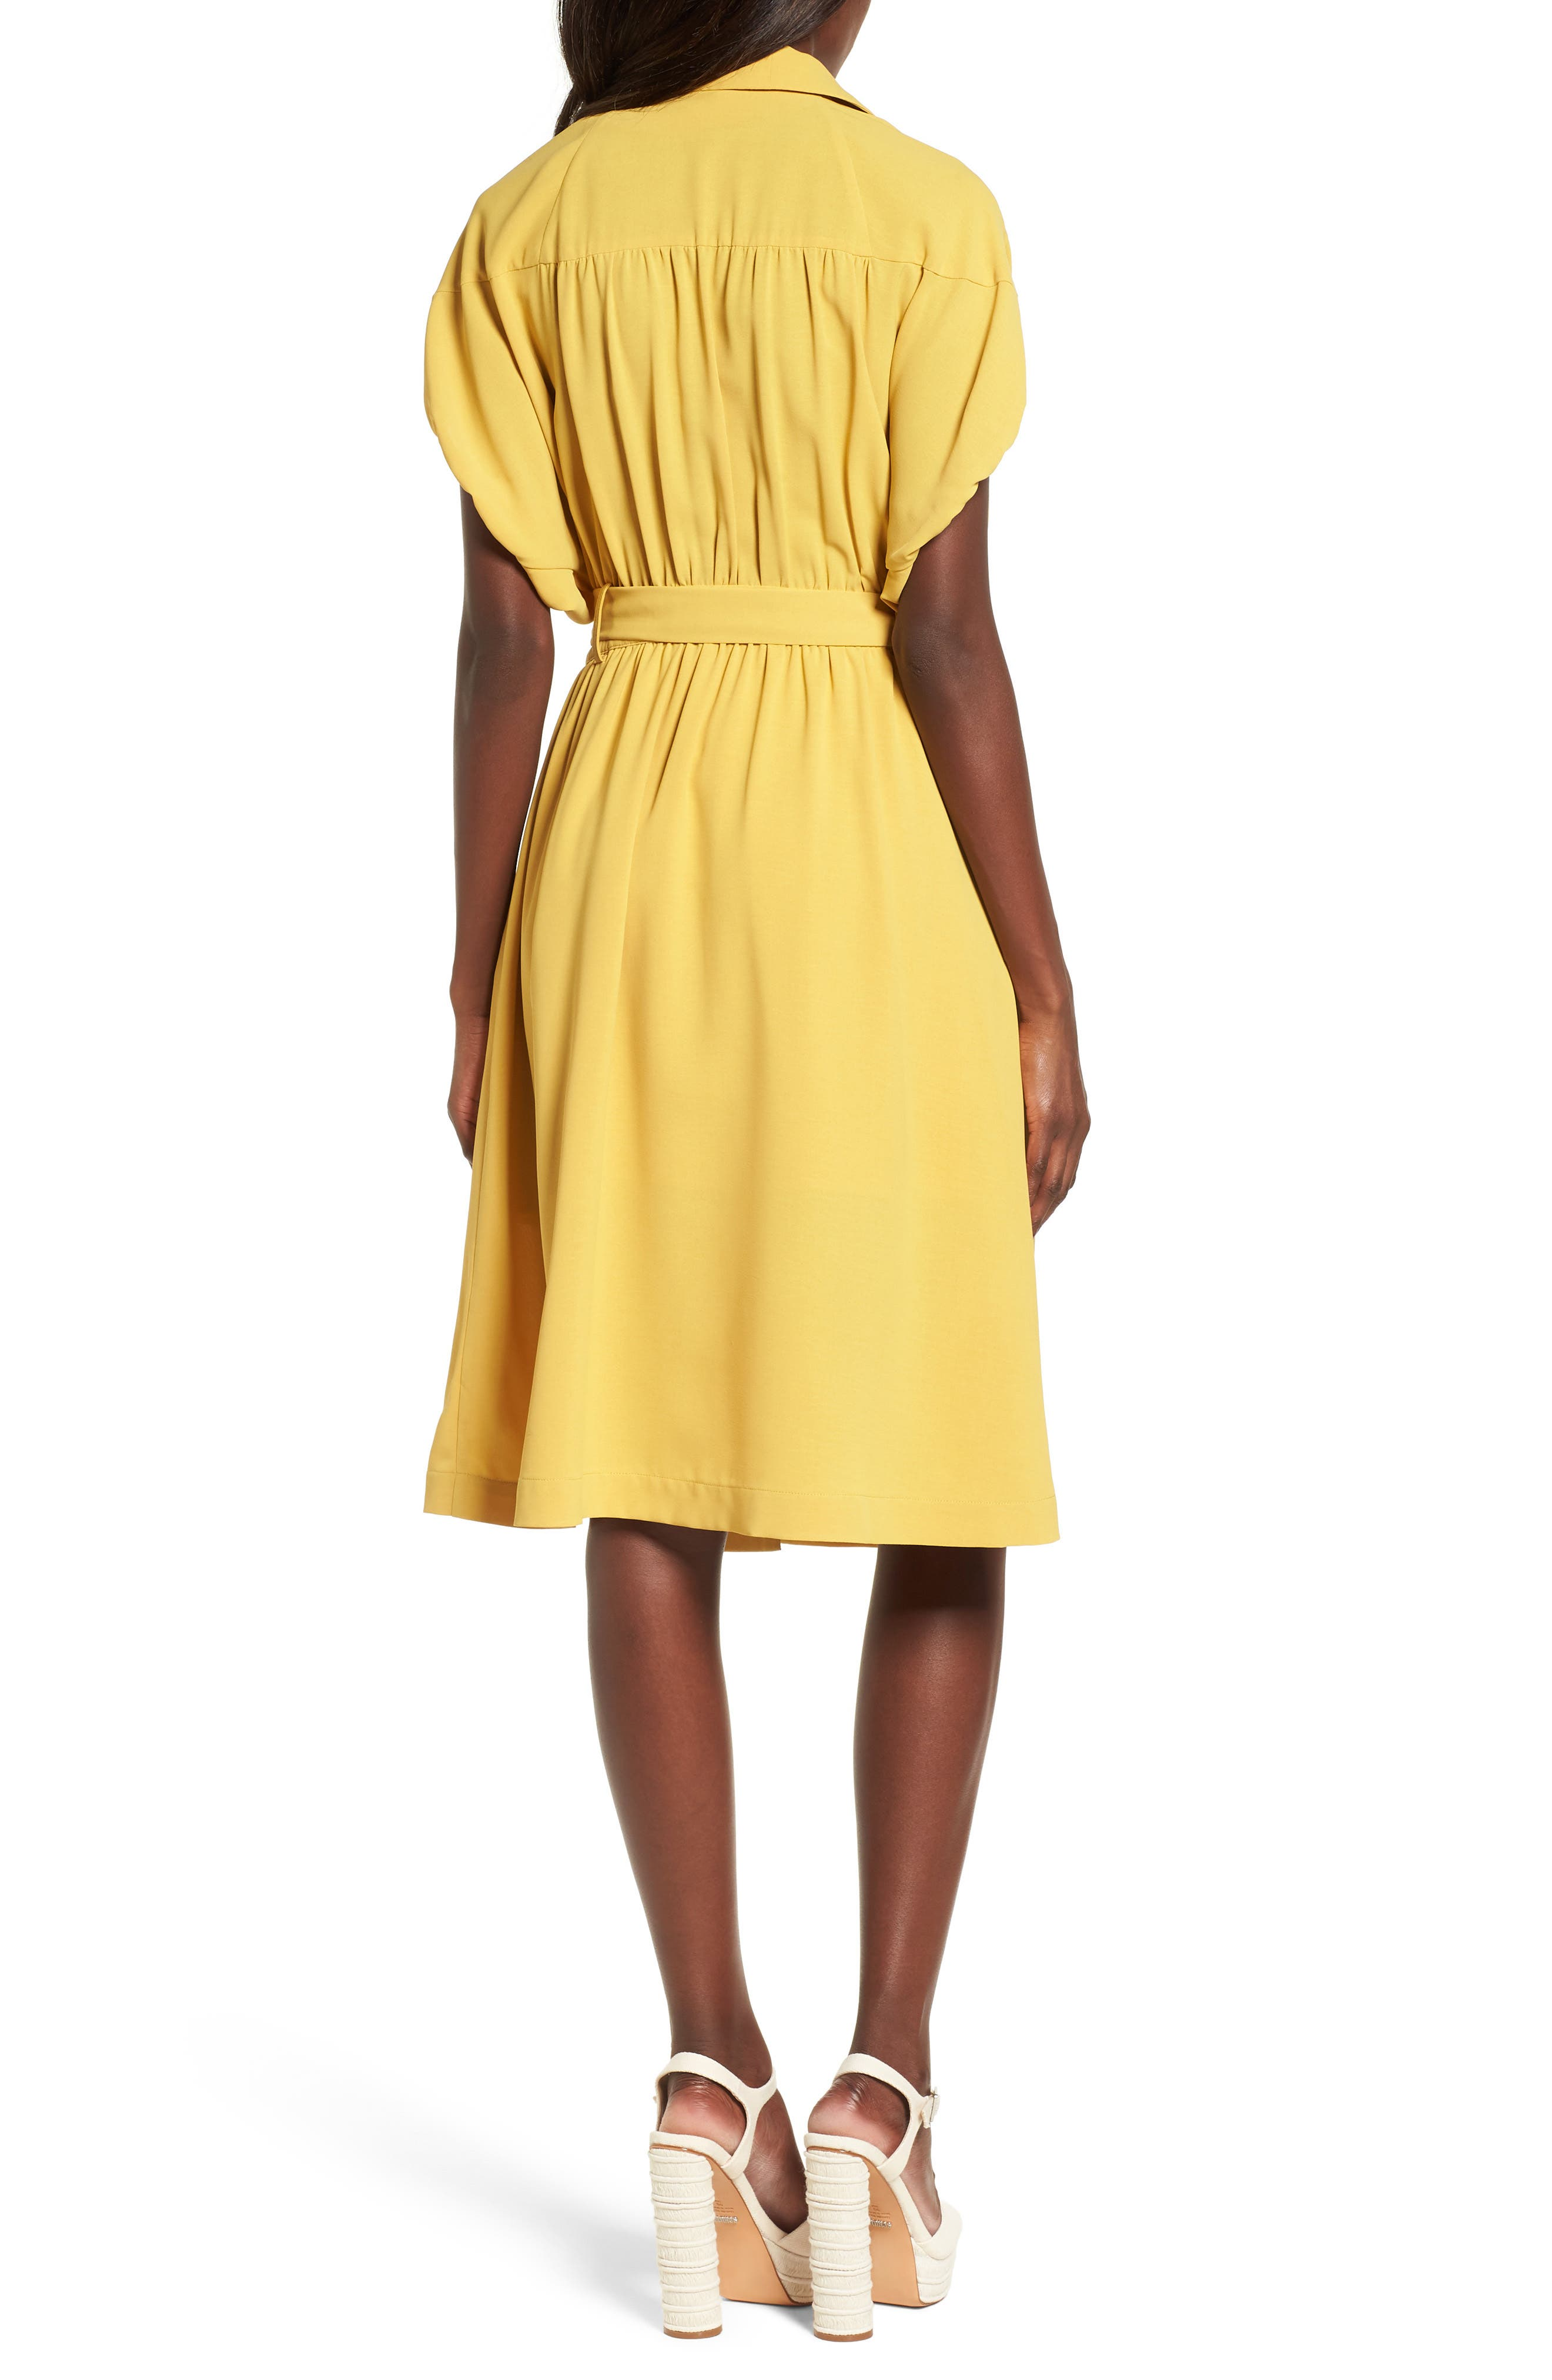 Chriselle x J.O.A. Cocoon Sleeve Dress,                             Alternate thumbnail 4, color,                             Roman Gold